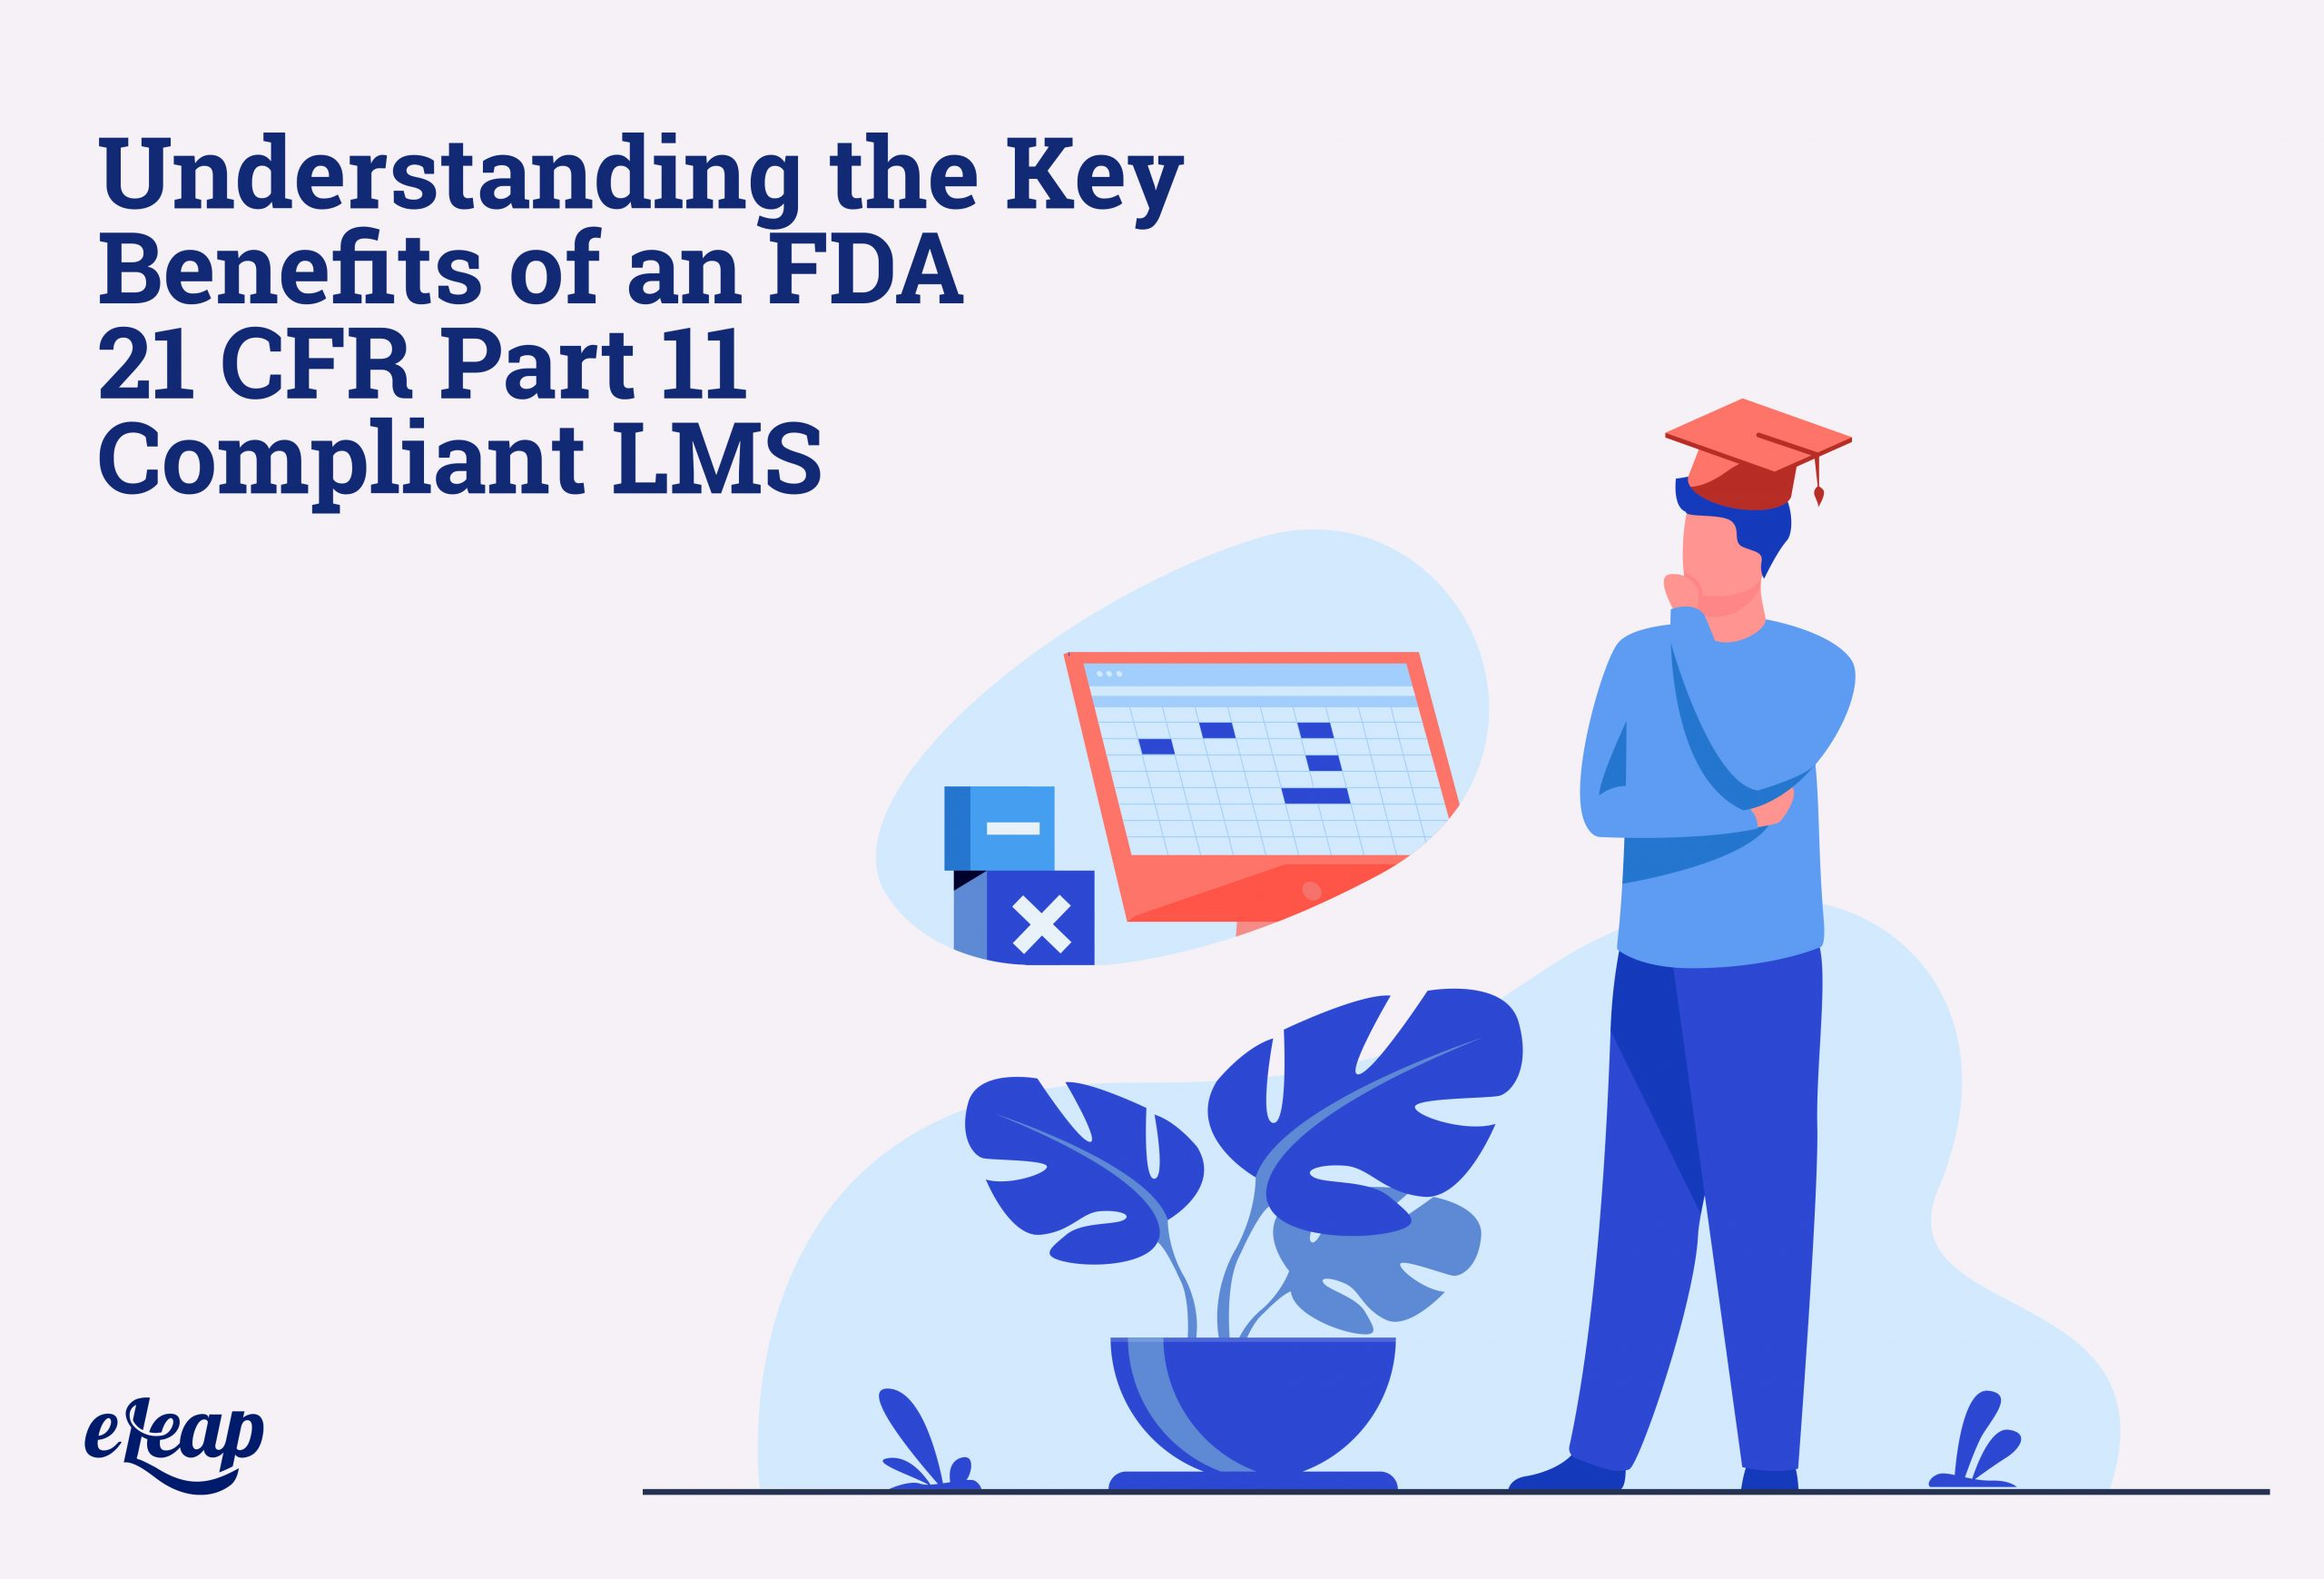 Understanding the Key Benefits of an FDA 21 CFR Part 11 Compliant LMS